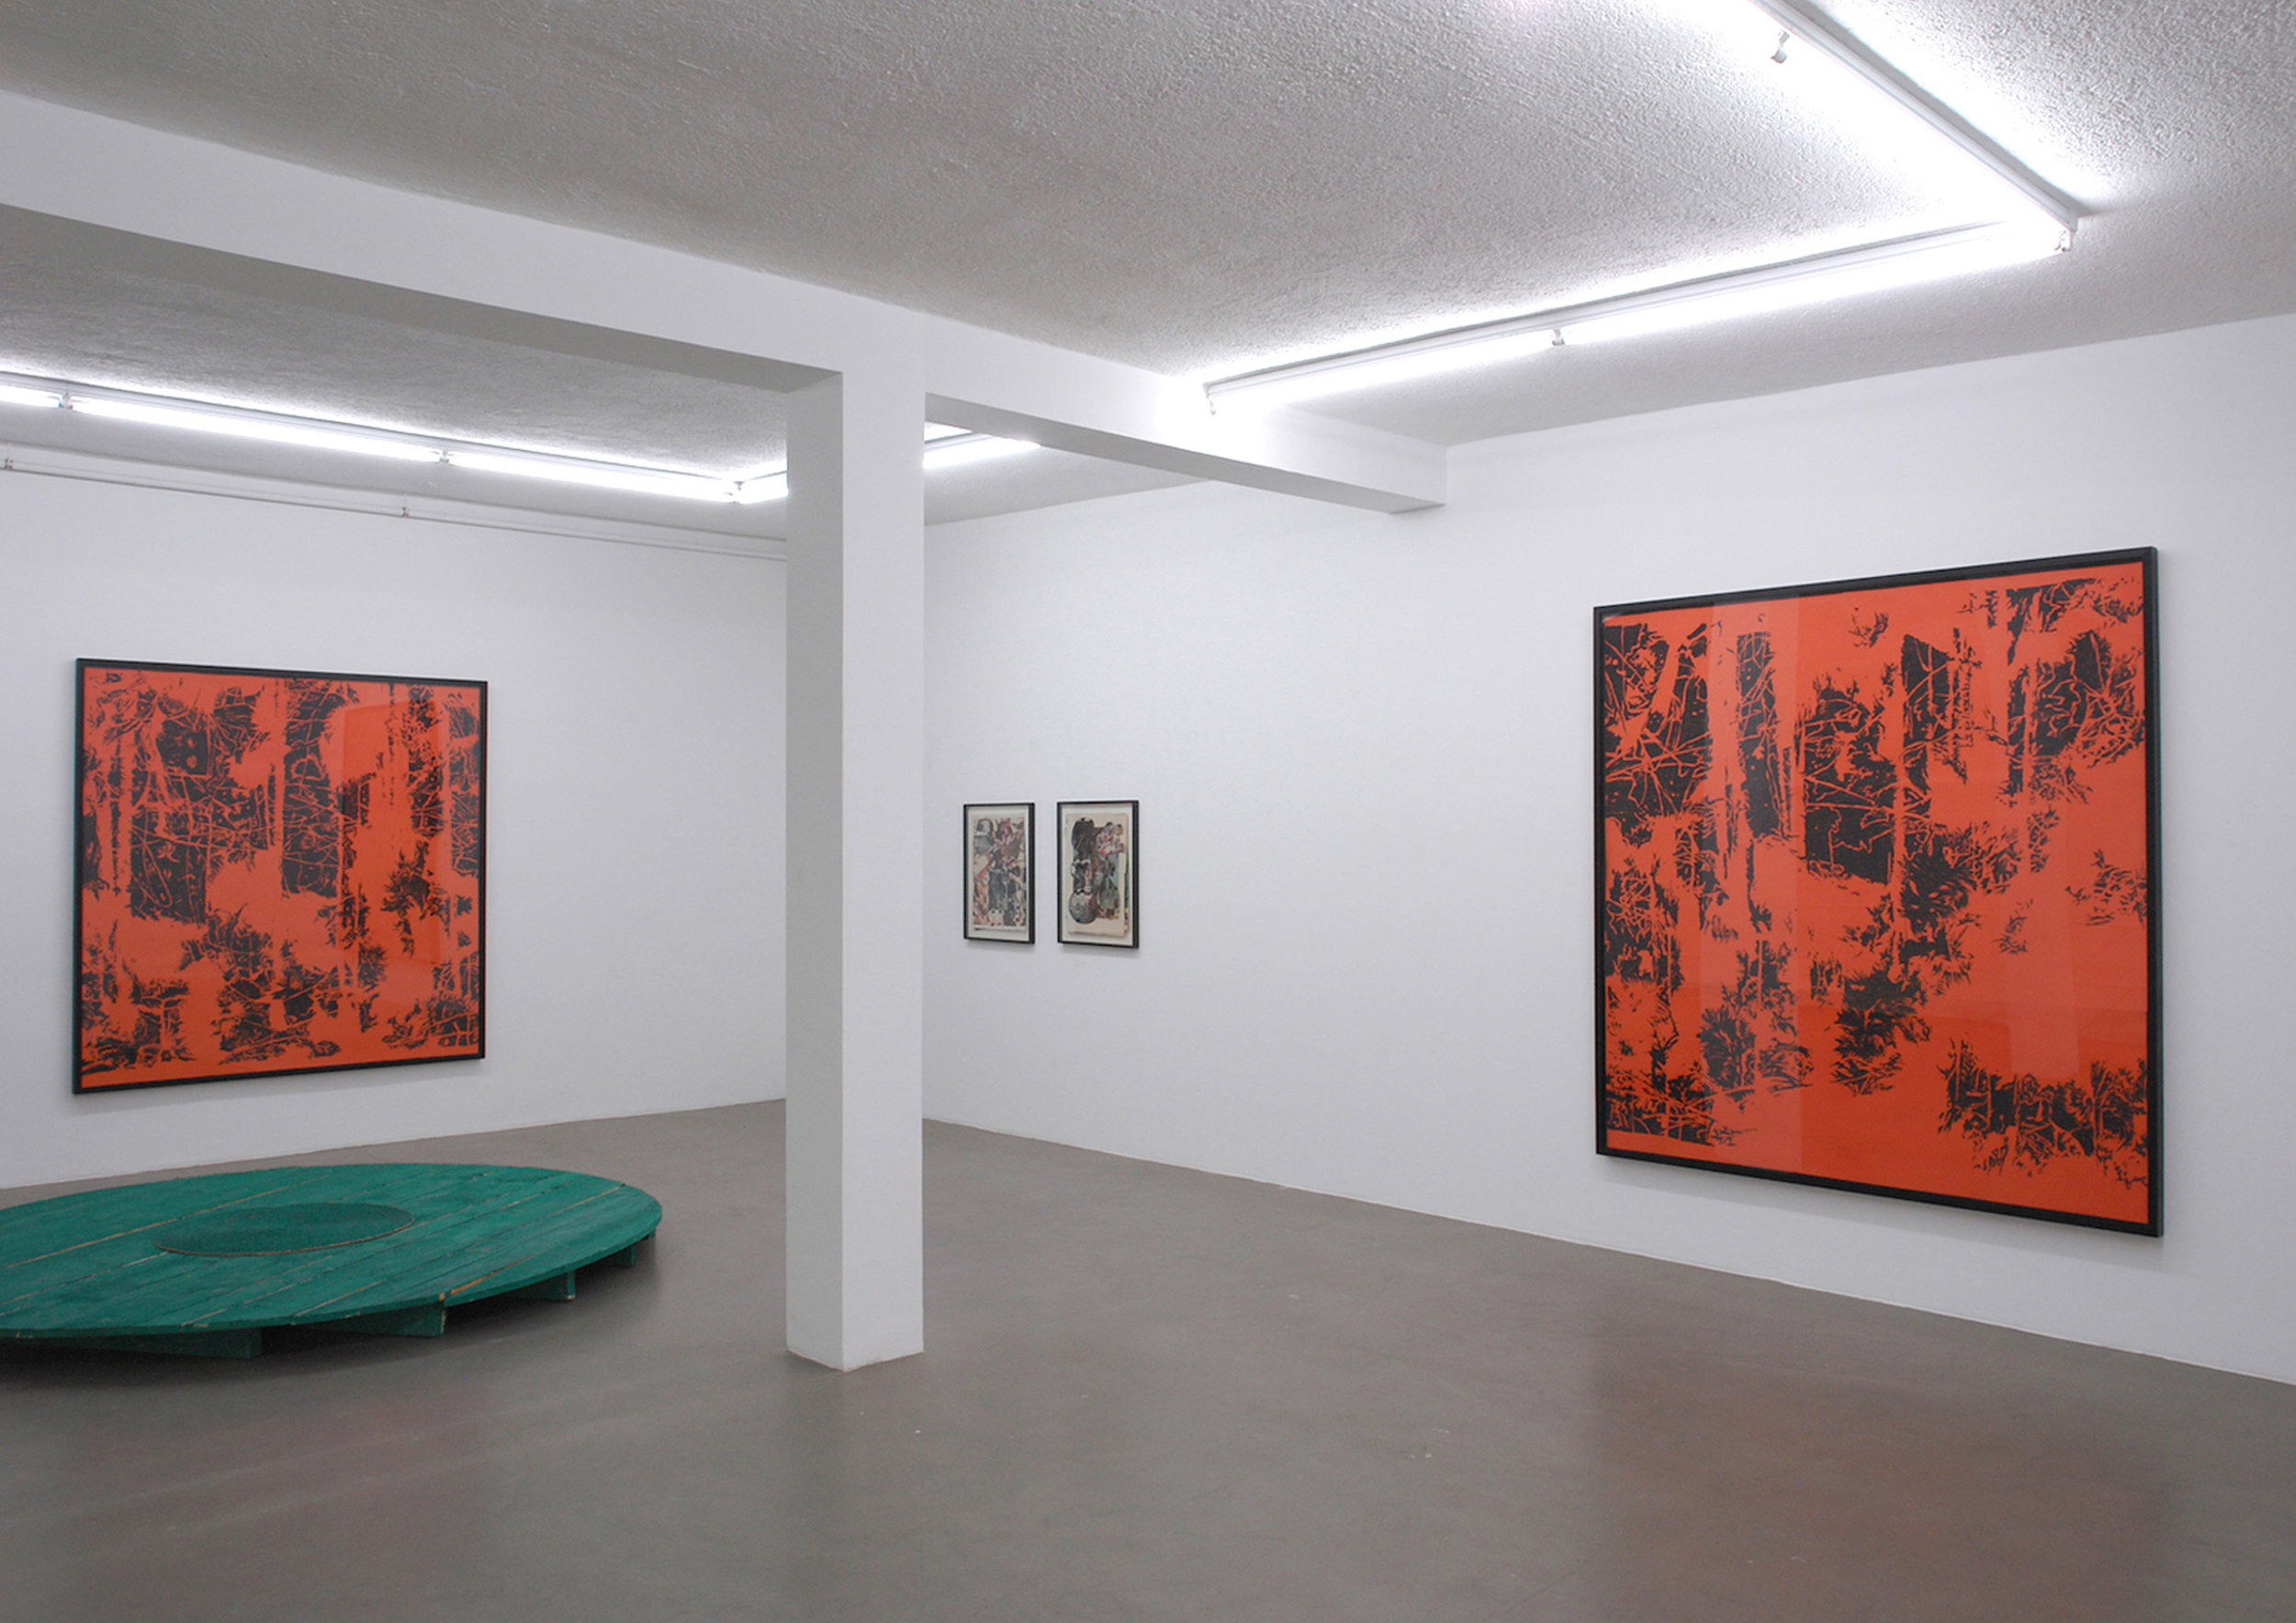 Ausstellung  march, friday or saturday,  Galerie Andreas Grimm, 2007